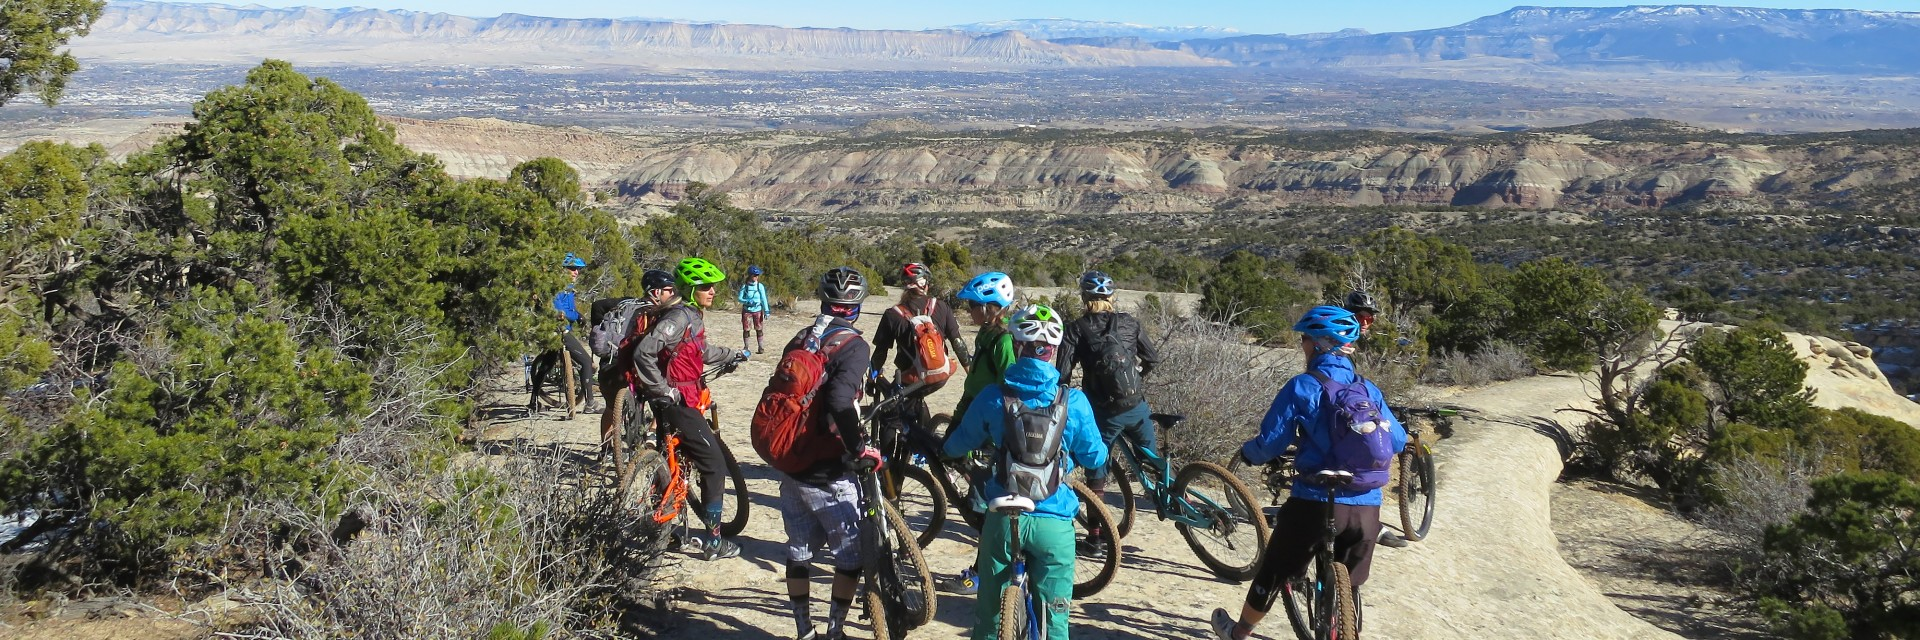 Rim Tours staff explore the slickrock mountain bike riding above Fruita, CO during late fall holiday